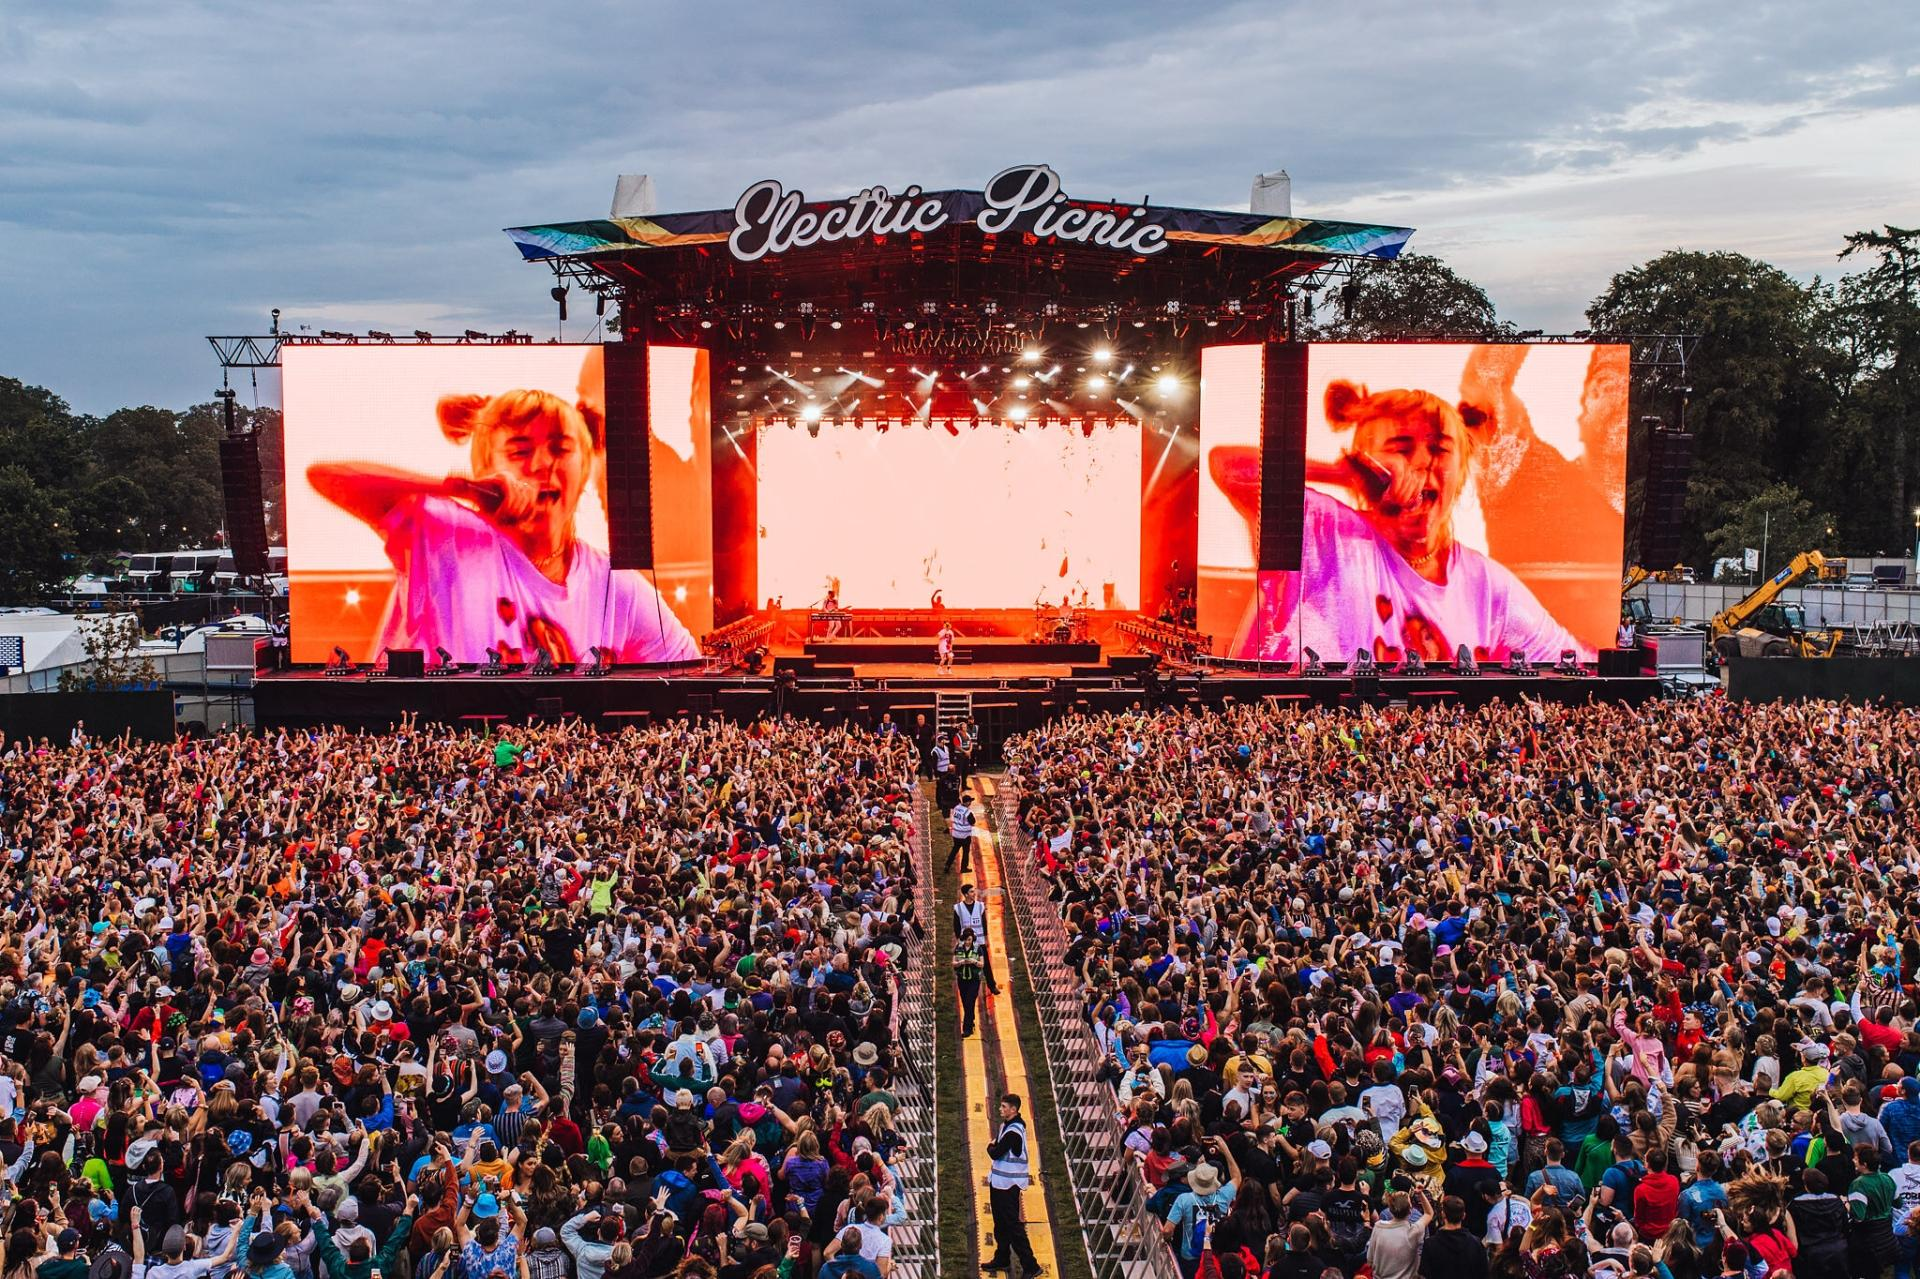 Tickets for Electric Picnic 2020 go on sale on Saturday, September 7 at 9am - Longford Leader